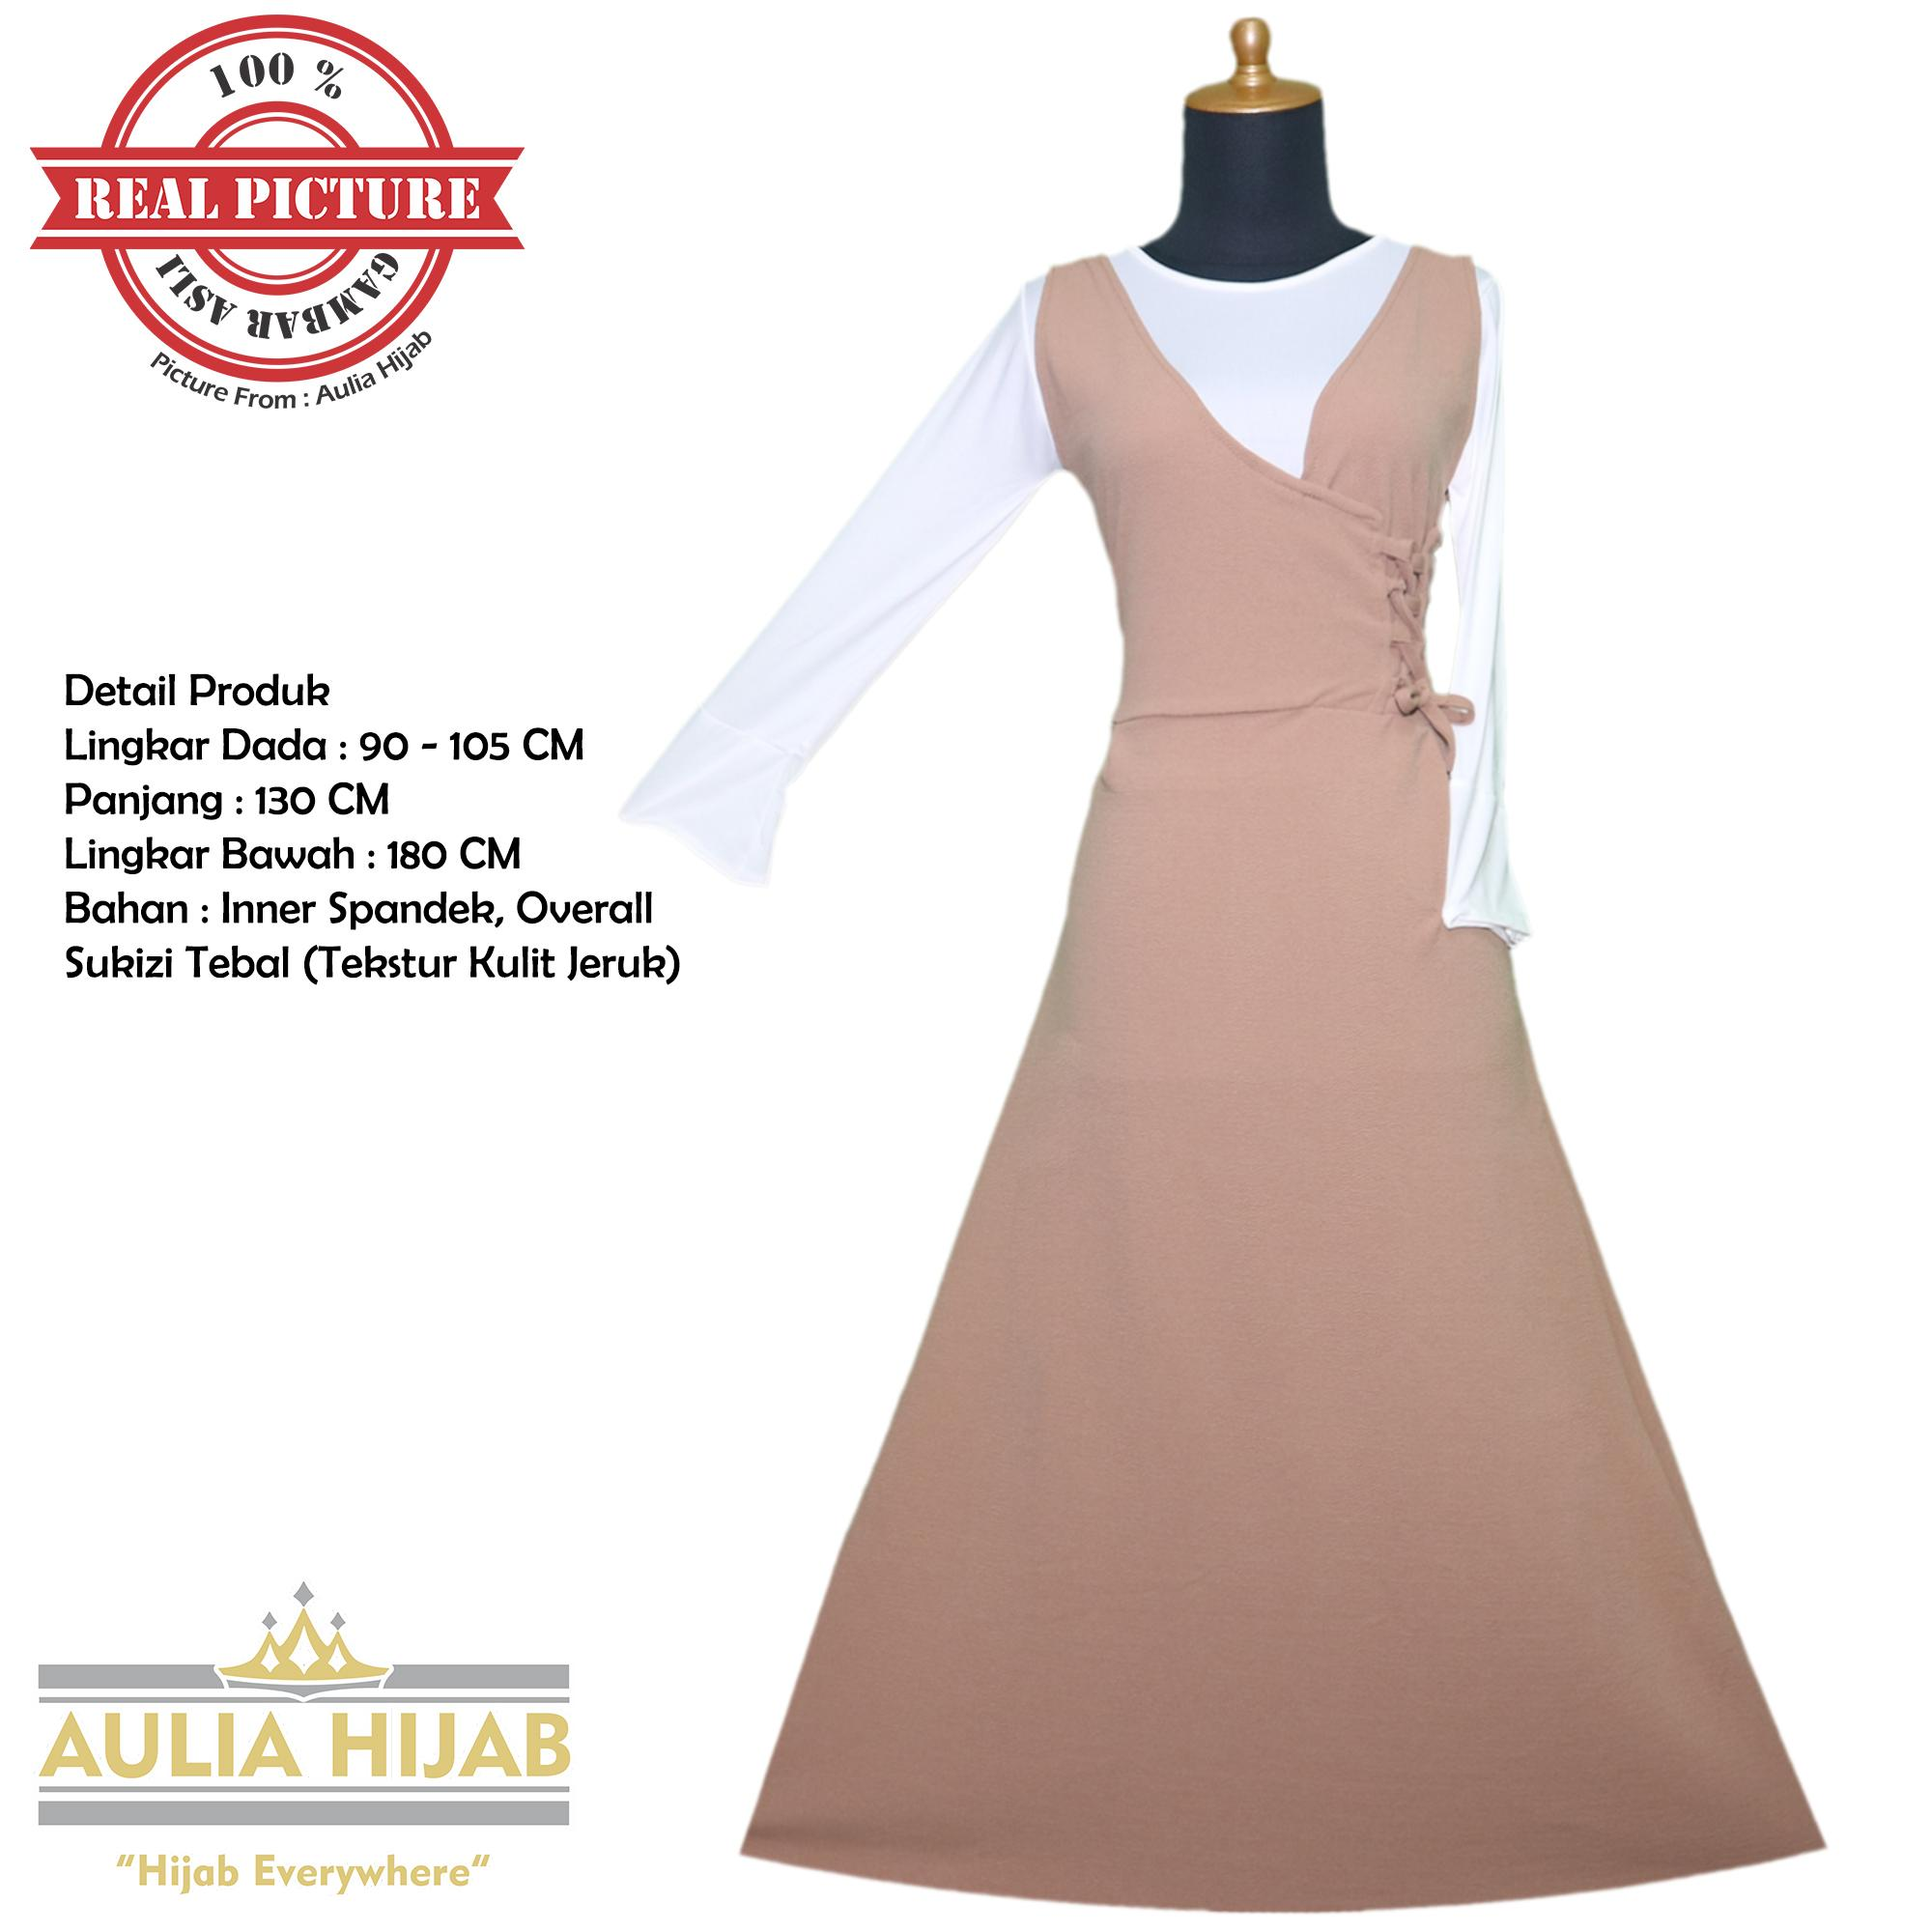 Aulia Hijab - Gamis Overall Annie Overall Bahan Sukizi Premium/Gamis Overall/Overall Murah/Gamis Langsung/Overall Terbaru/Baju Kodok/Gamis Pesta/Gamis Kerja/Gamis Sukizi/Gamis Premium/Sukizi Premium/Overall Gambar Asli/Overall Real Picture/Overall Premium